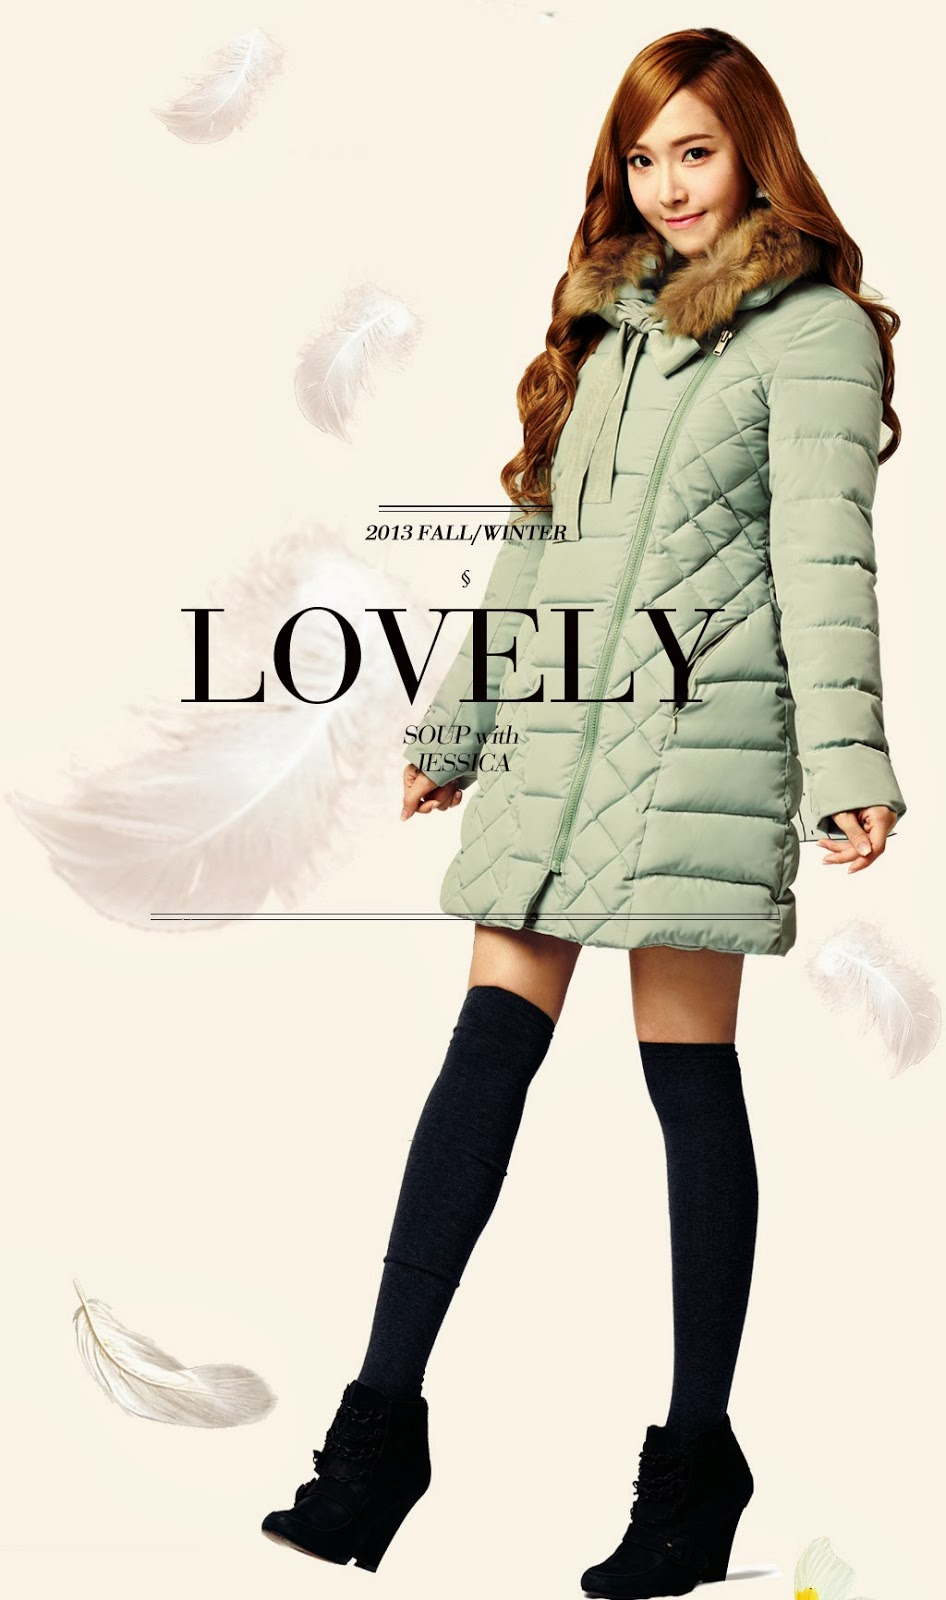 Jessica Snsd Winter Collection 14 Wallpapers